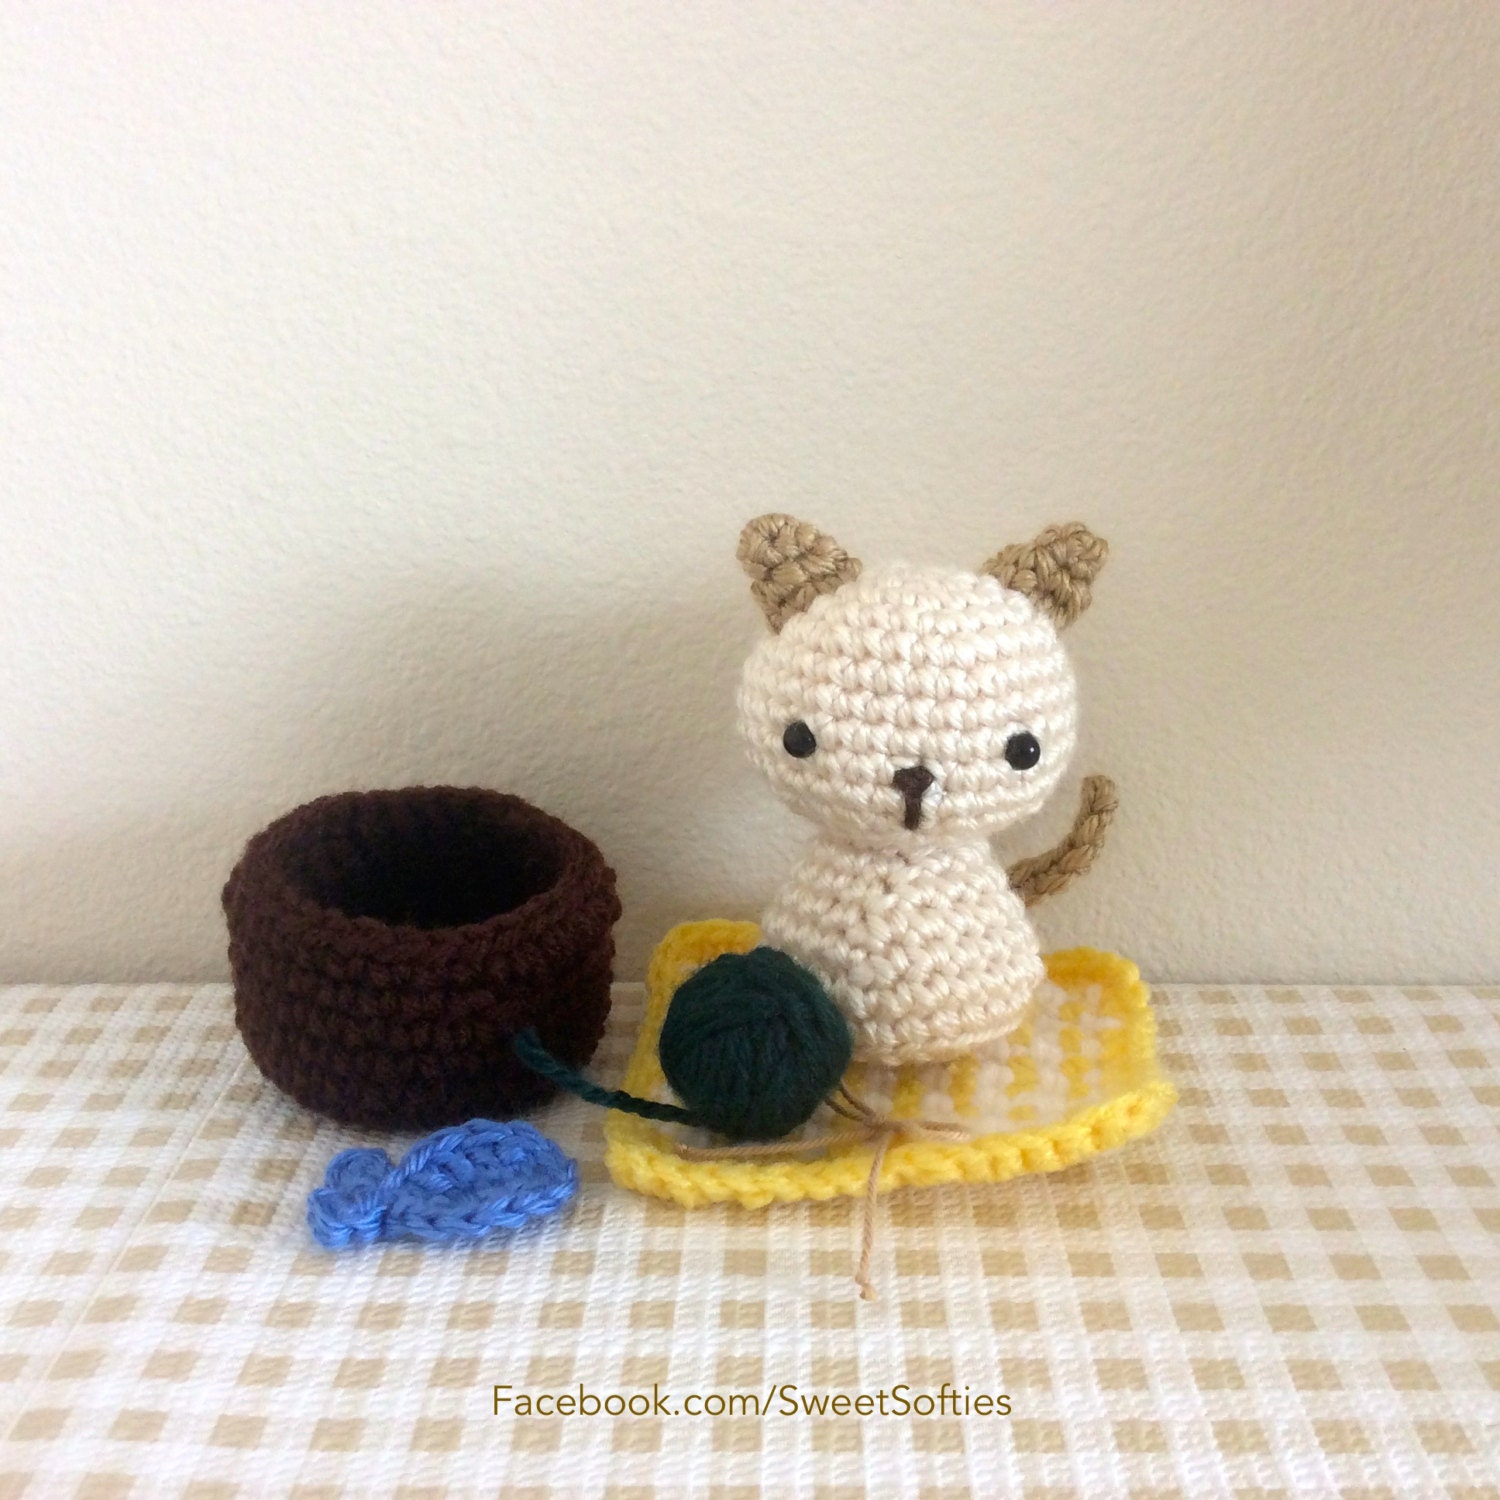 Amigurumi Crochet patrón Animal Kitty Cat Chibi Kokeshi muñeca | Etsy